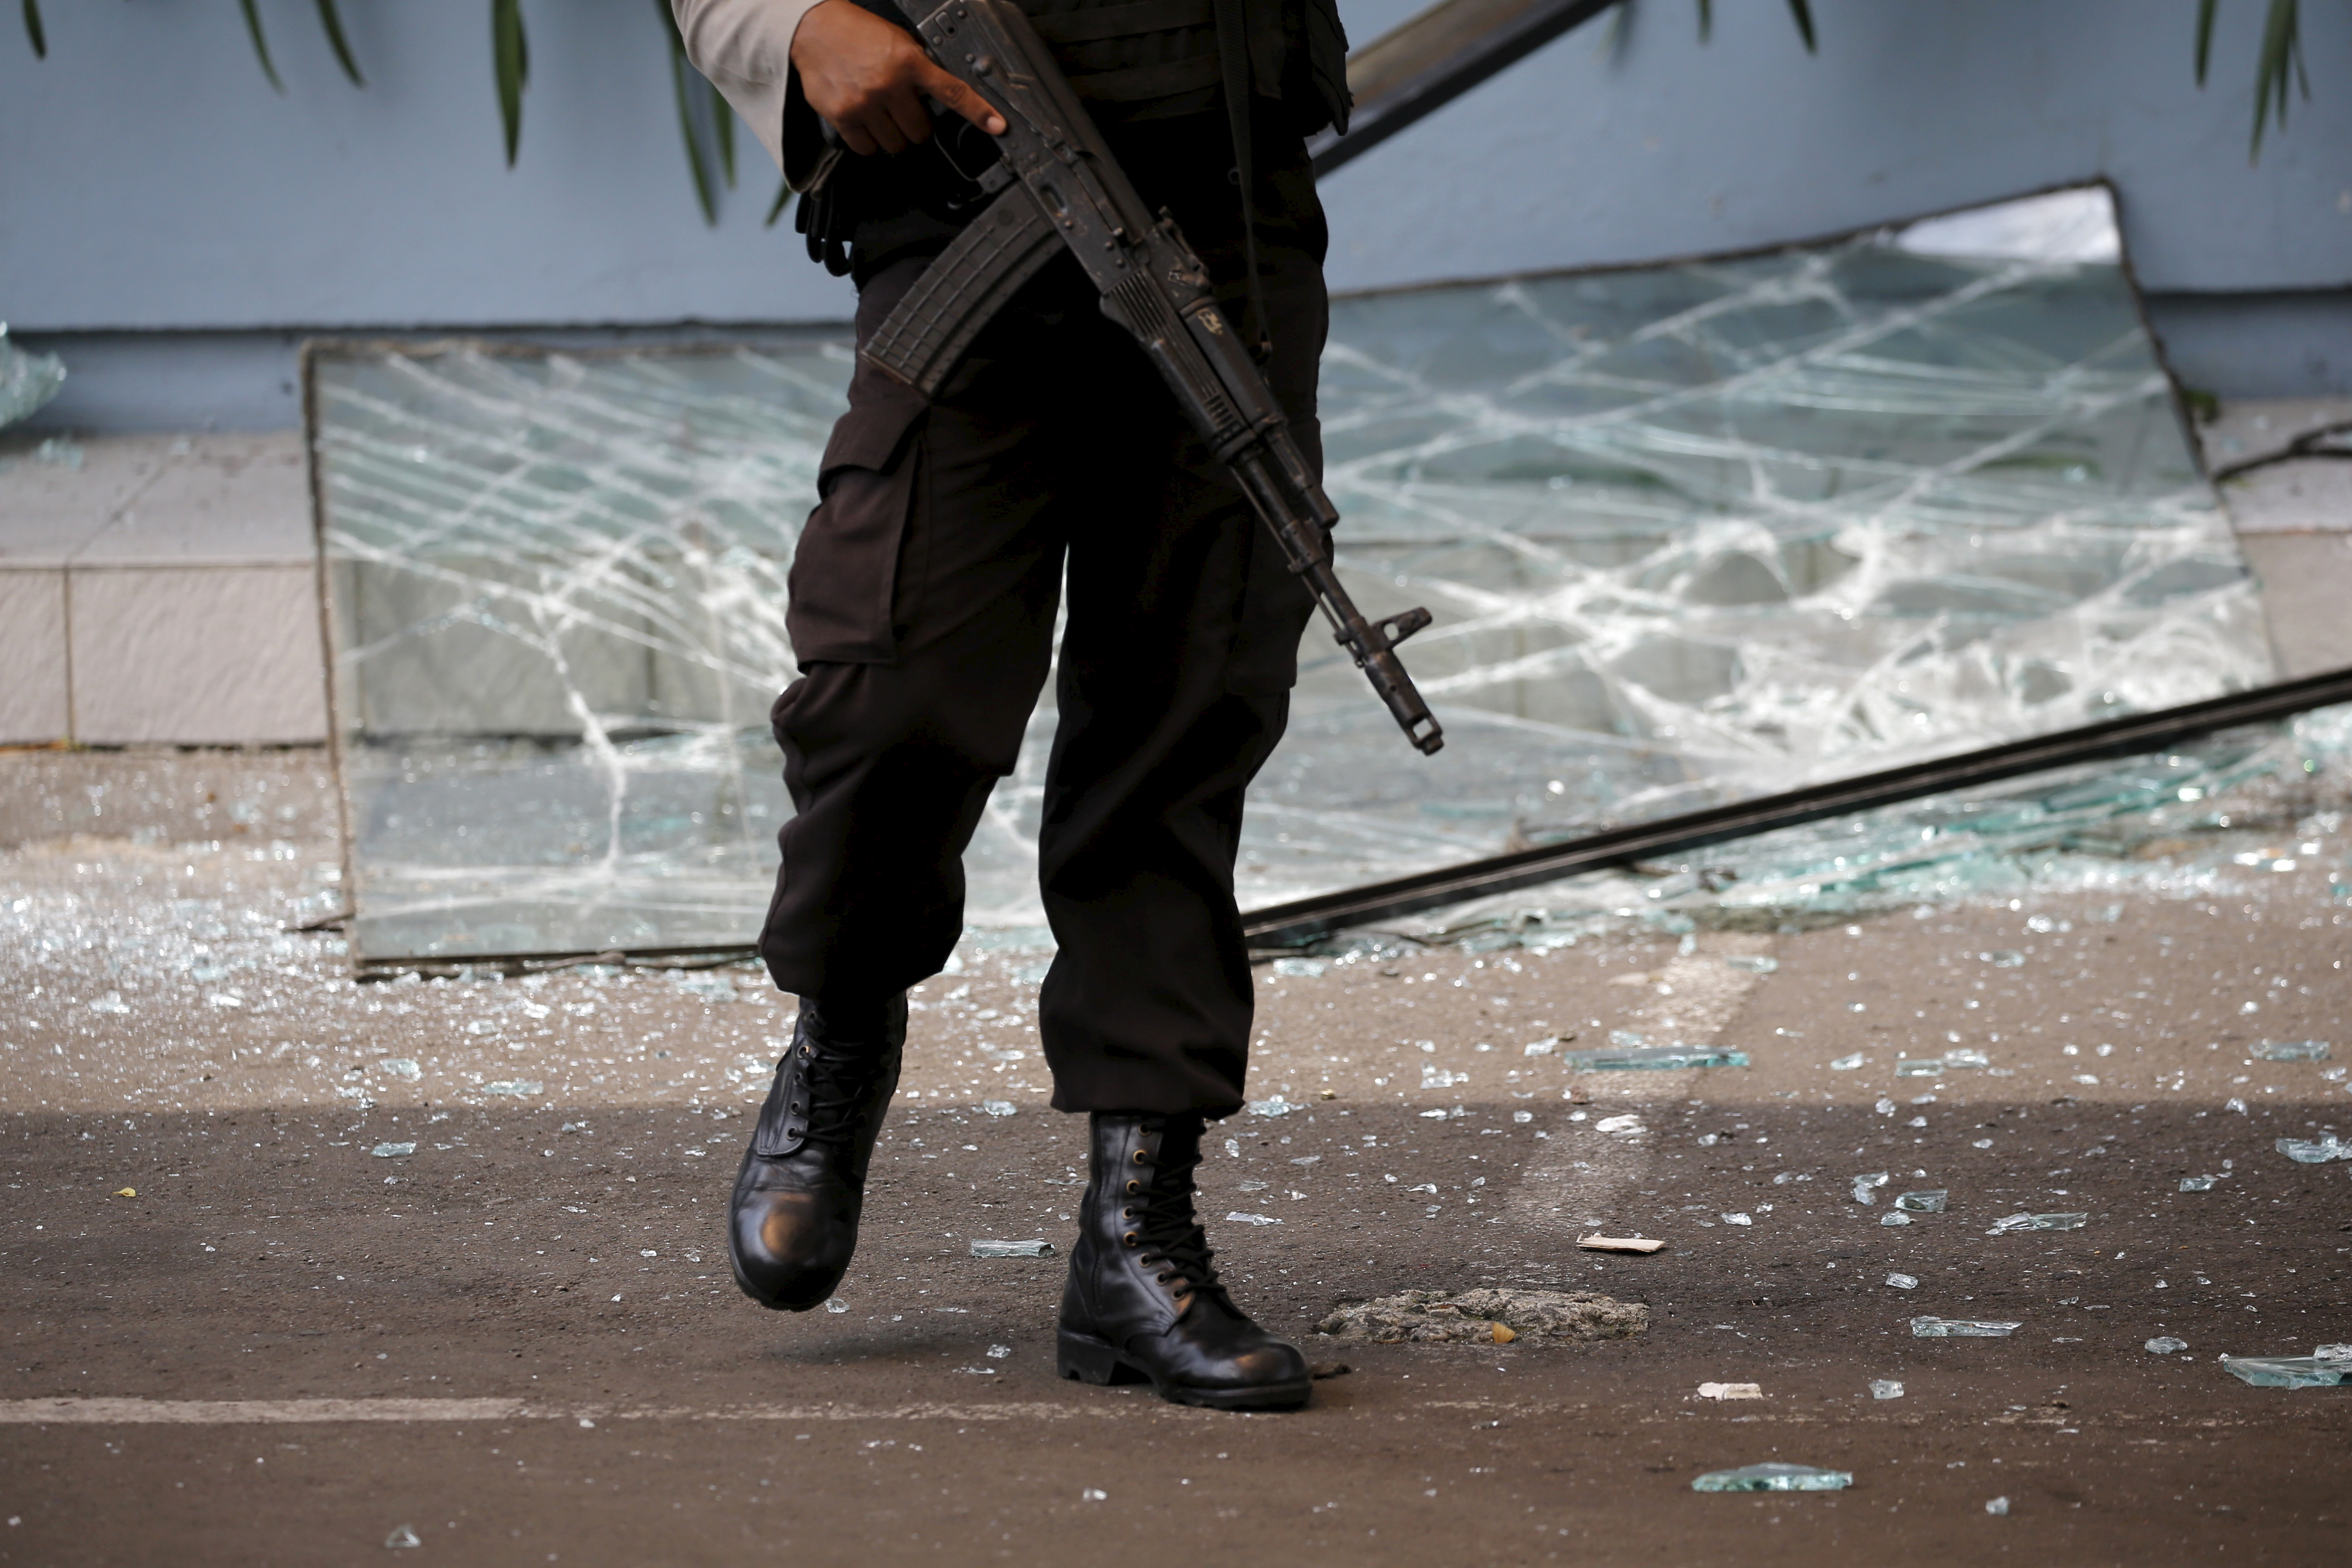 An Indonesian policeman holds a weapon while walking near a broken glass window from a Starbucks outlet in Jakarta on Jan. 14, 2016, after militants launched a deadly gun-and-bomb assault